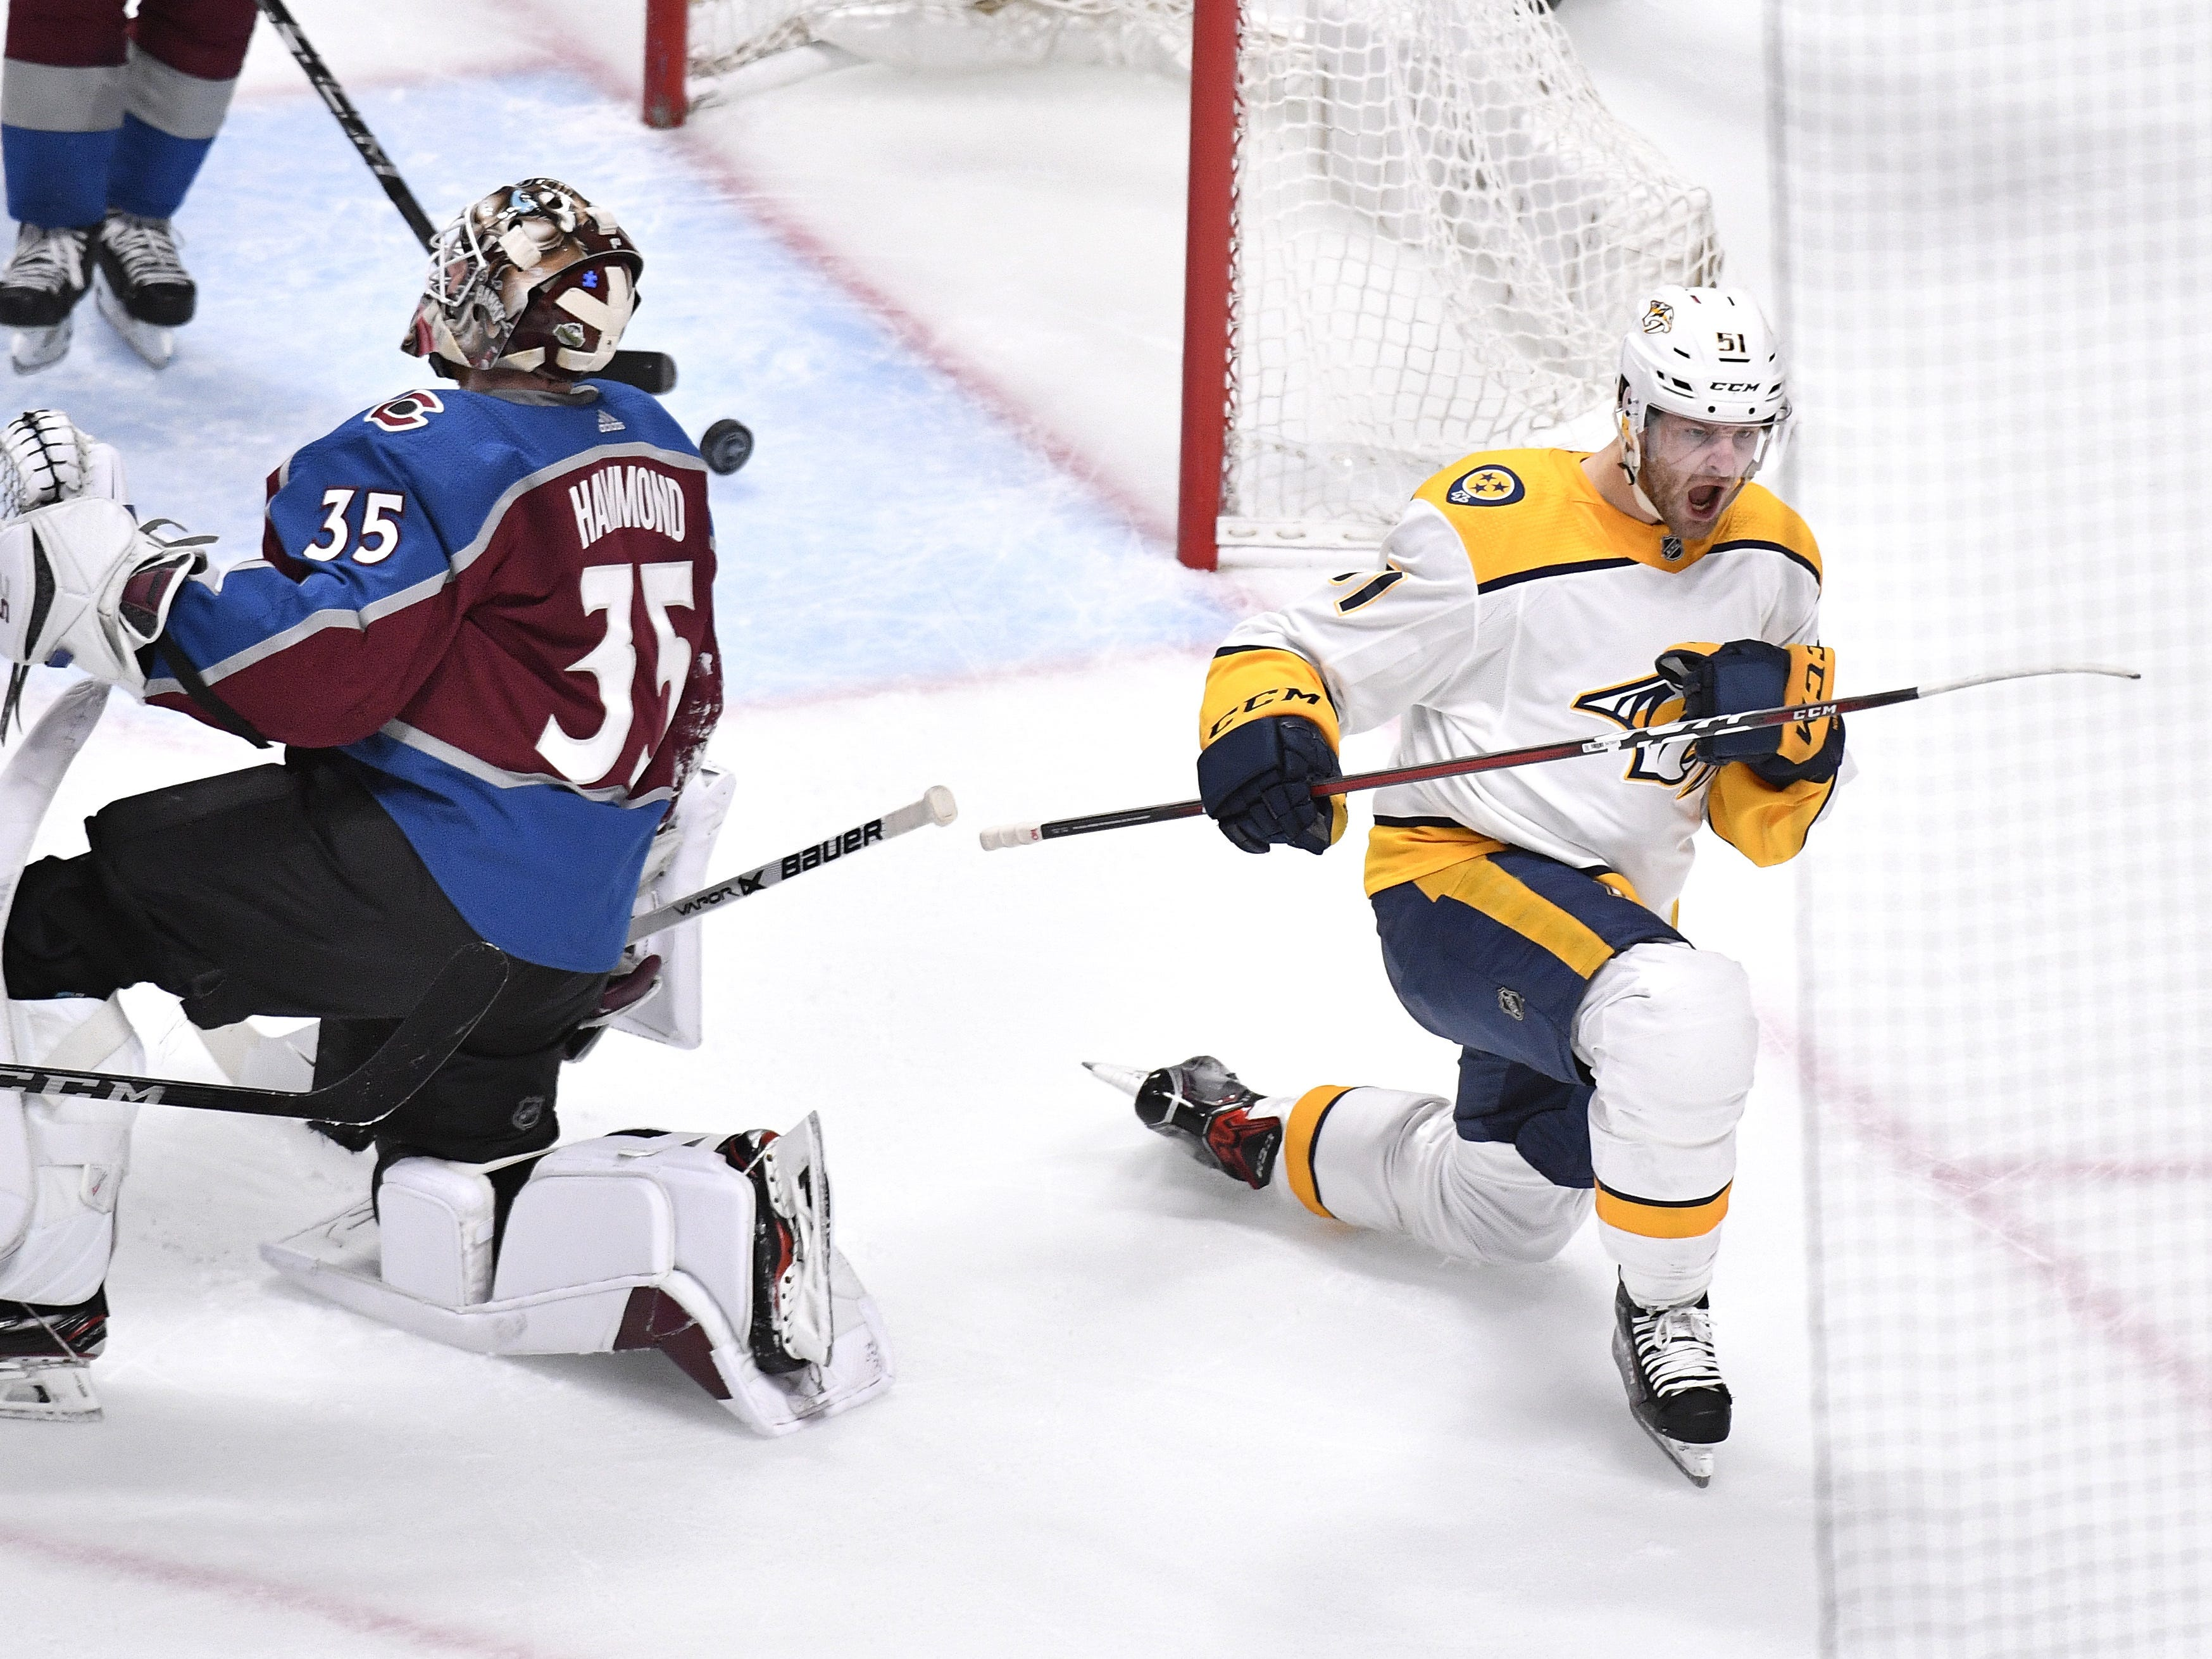 #51, Austin Watson, Forward - Nashville Predators left wing Austin Watson (51) reacts to his goal past Colorado Avalanche goaltender Andrew Hammond (35) during the first period of game 6 in the first round NHL Stanley Cup Playoffs at Pepsi Center, Sunday, April 22, 2018, in Denver, Colo.